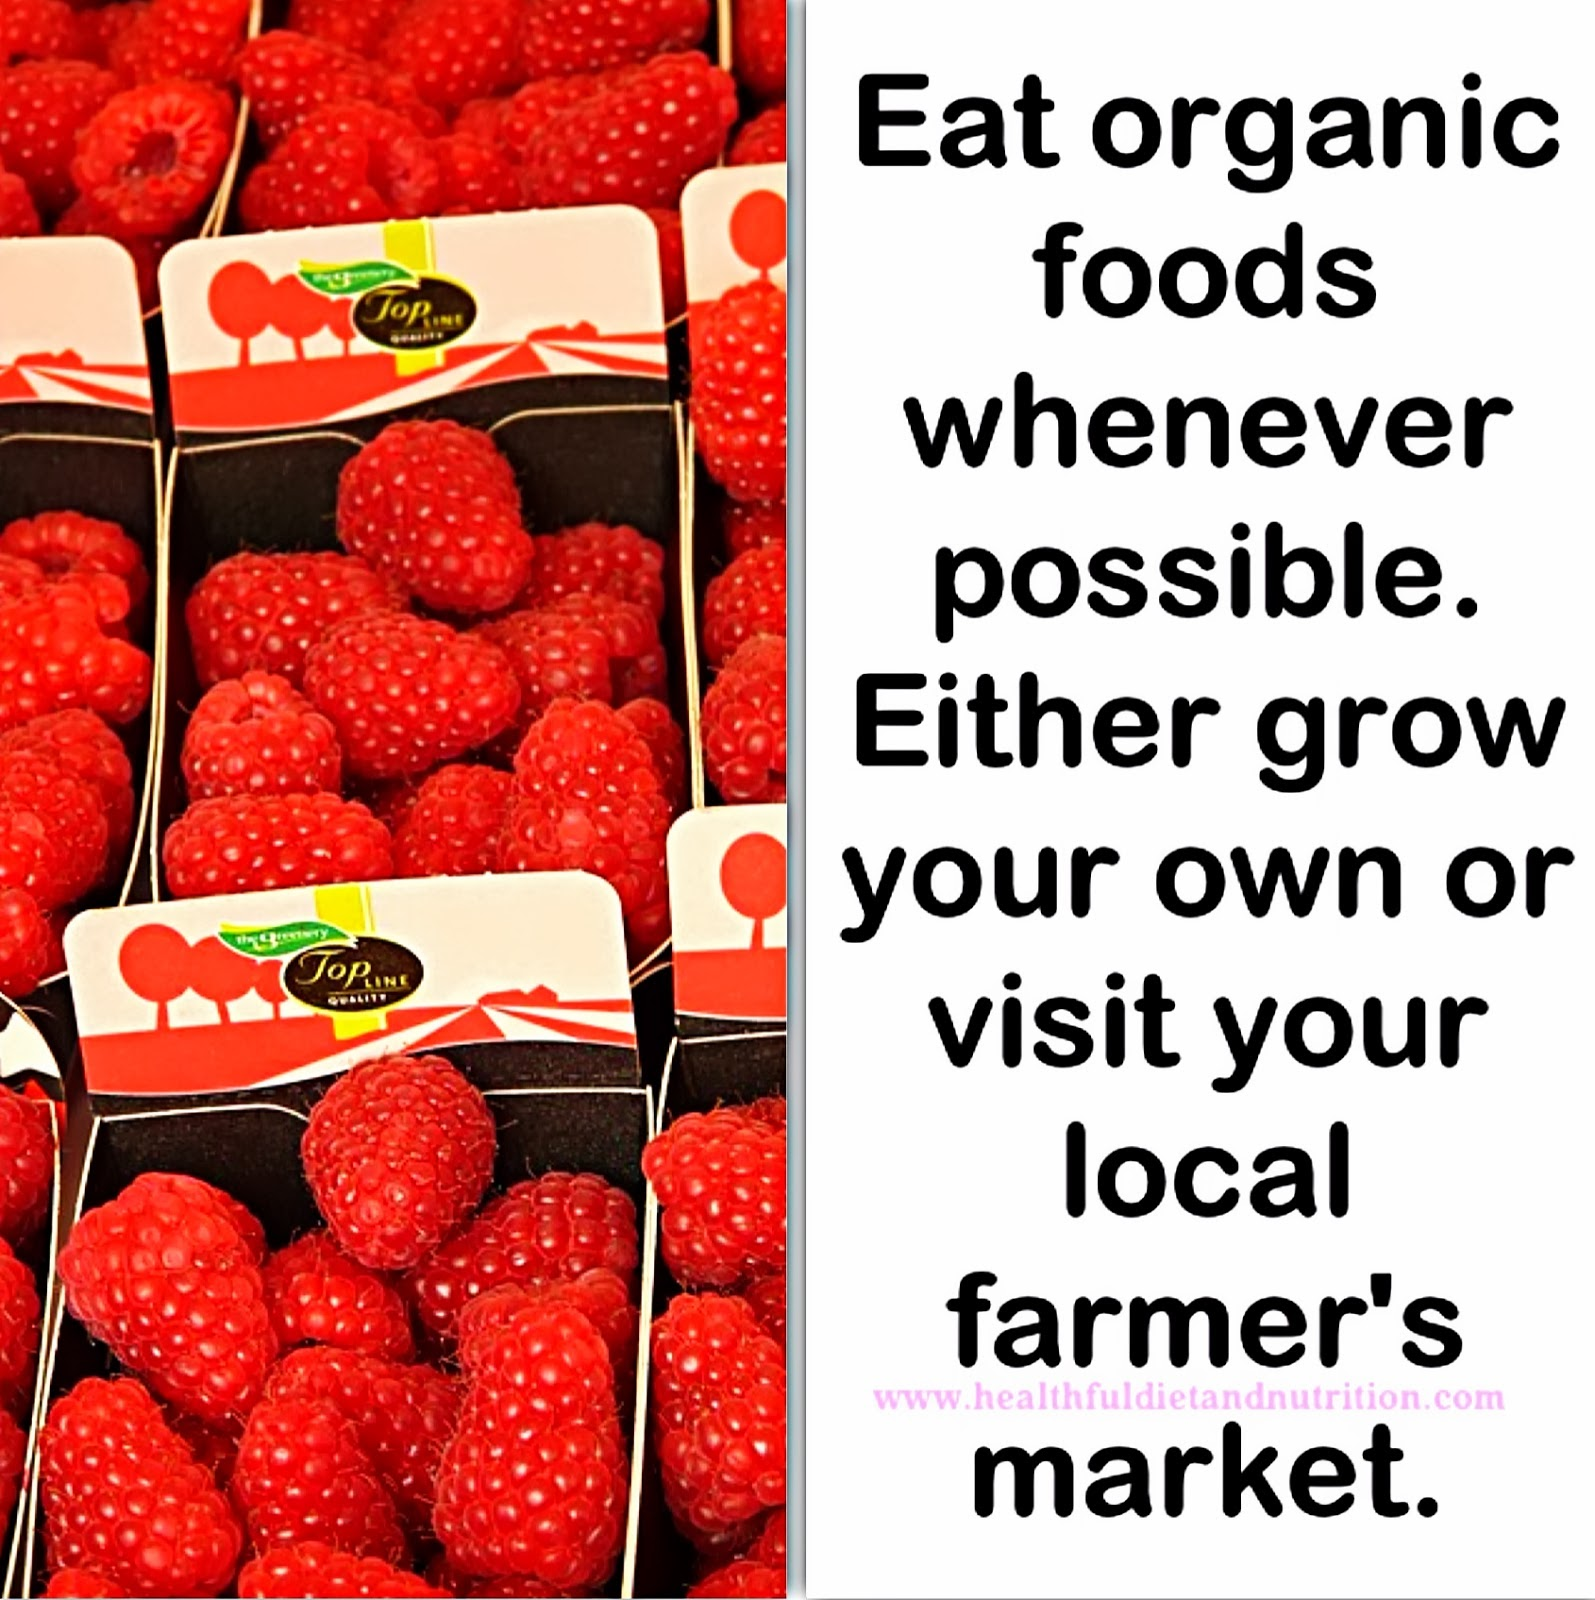 Eat Organic Foods Whenever Possible